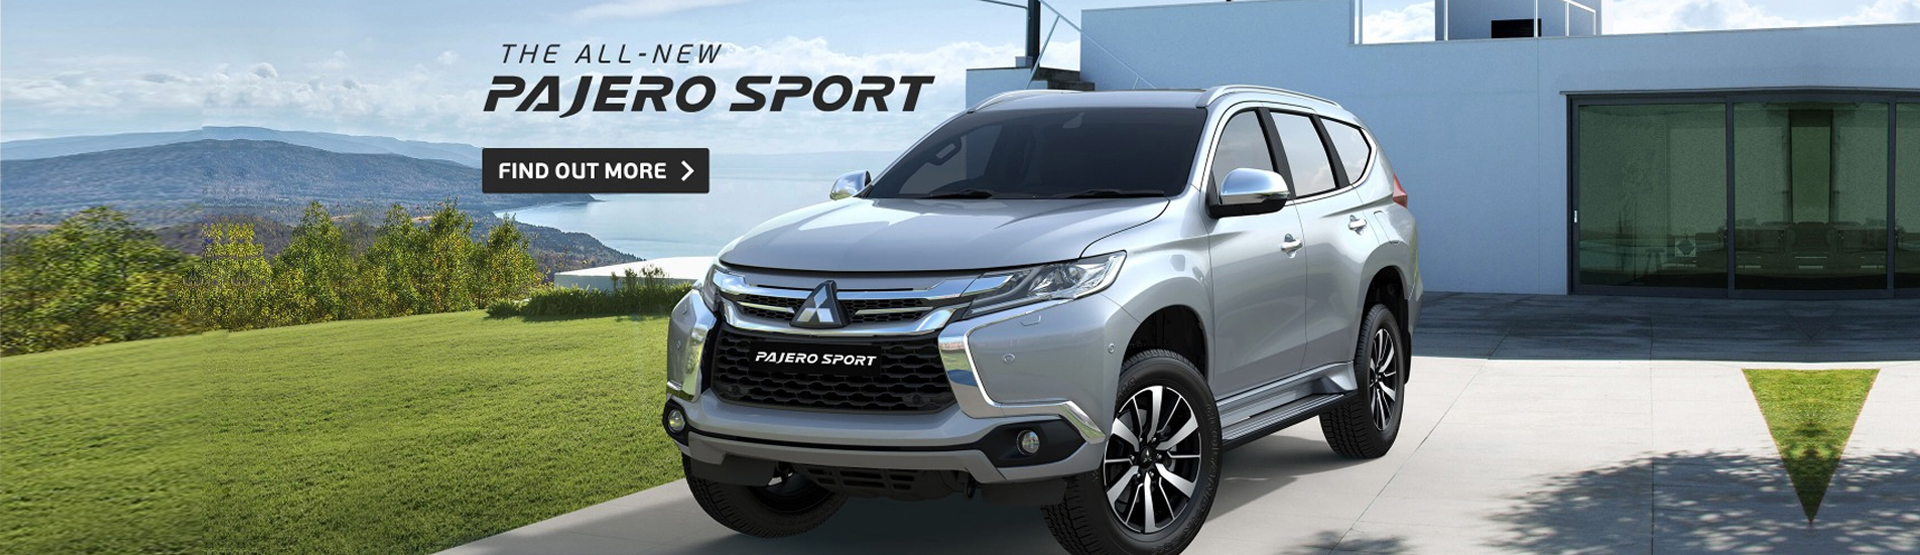 The all-new Pajero Sport, find out more at Nundah Mitsubishi Brisbane today.